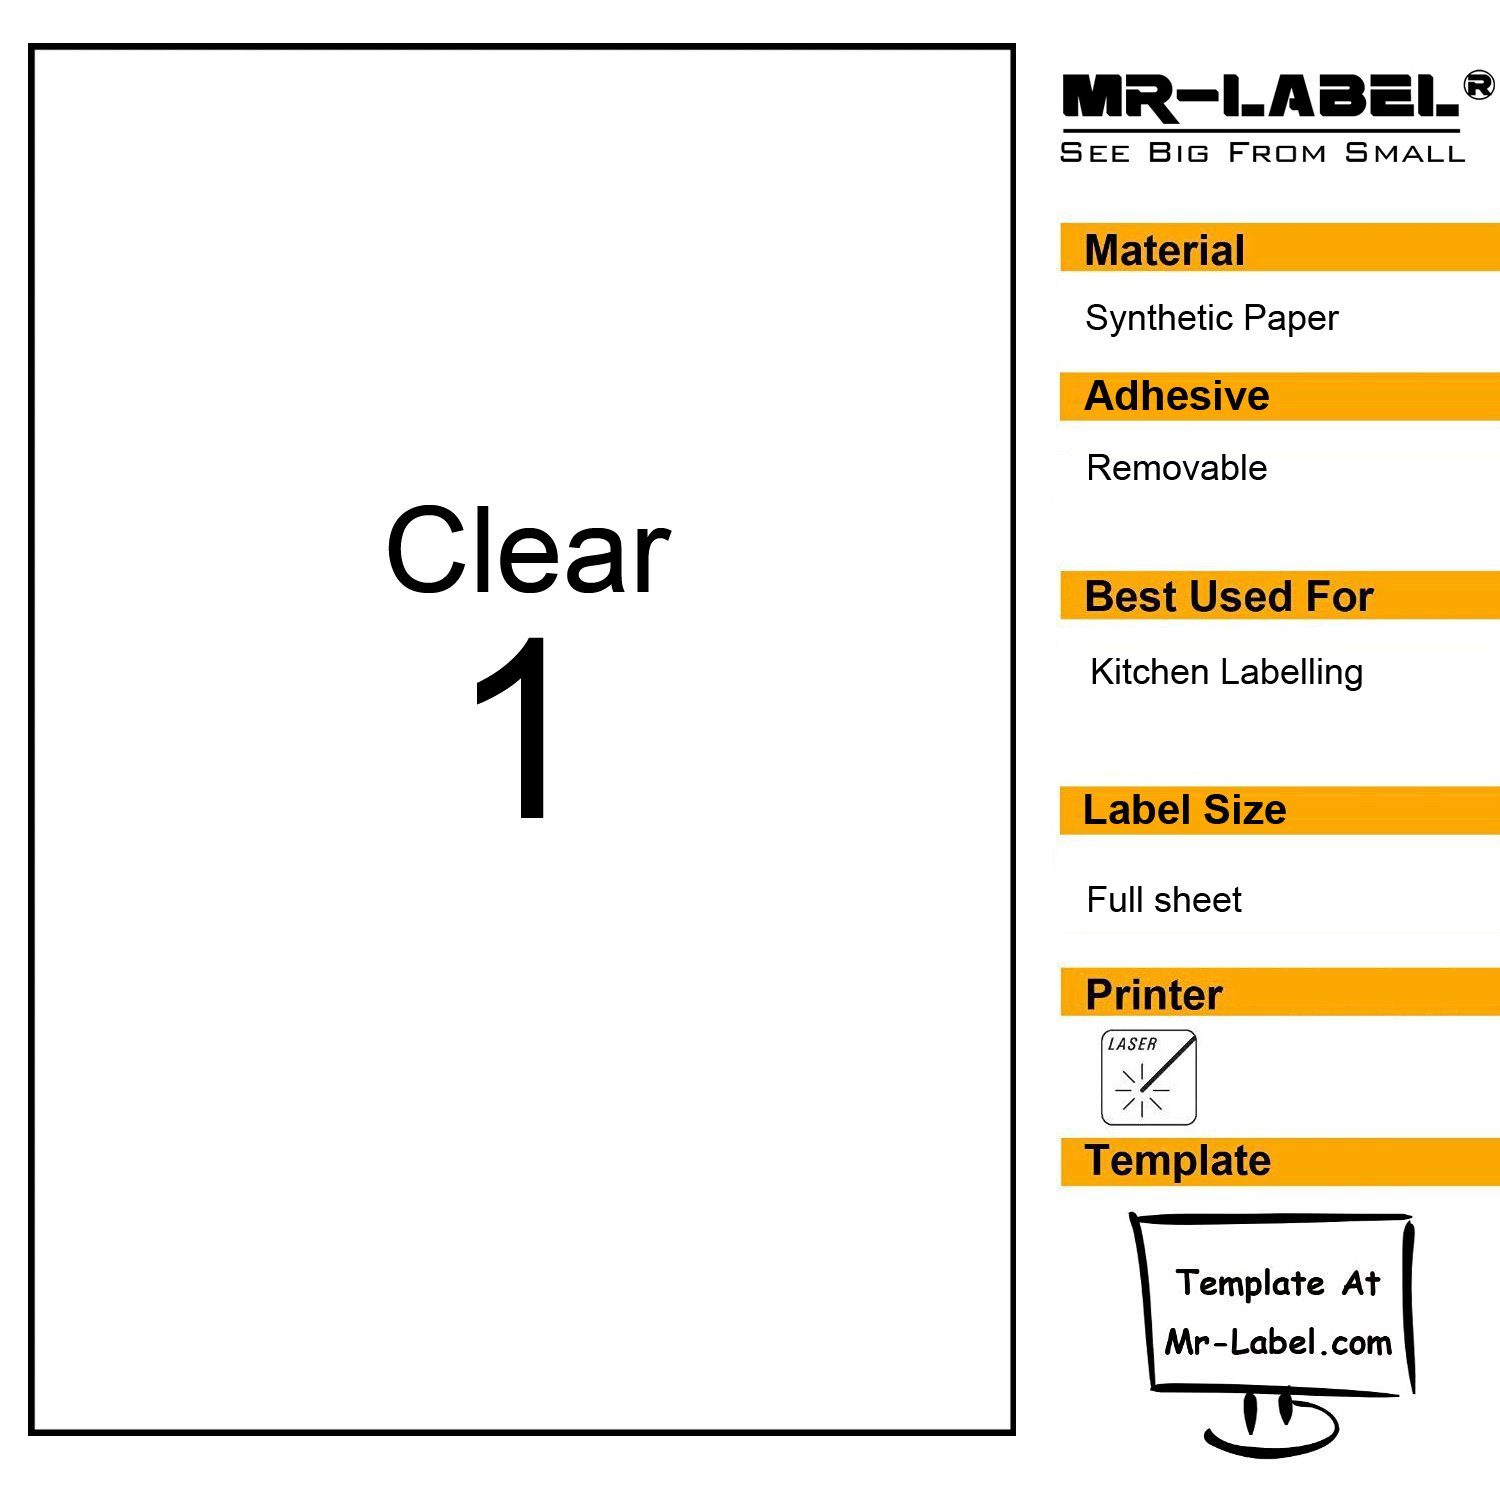 Mr-Label Clear Full Letter Sheet Removable Adhesive Labels -Transparent Tear-Resistant Waterproof Stickers for Kitchen Use | Manufacturing and Storage-Laser Print Only (25 Sheets)